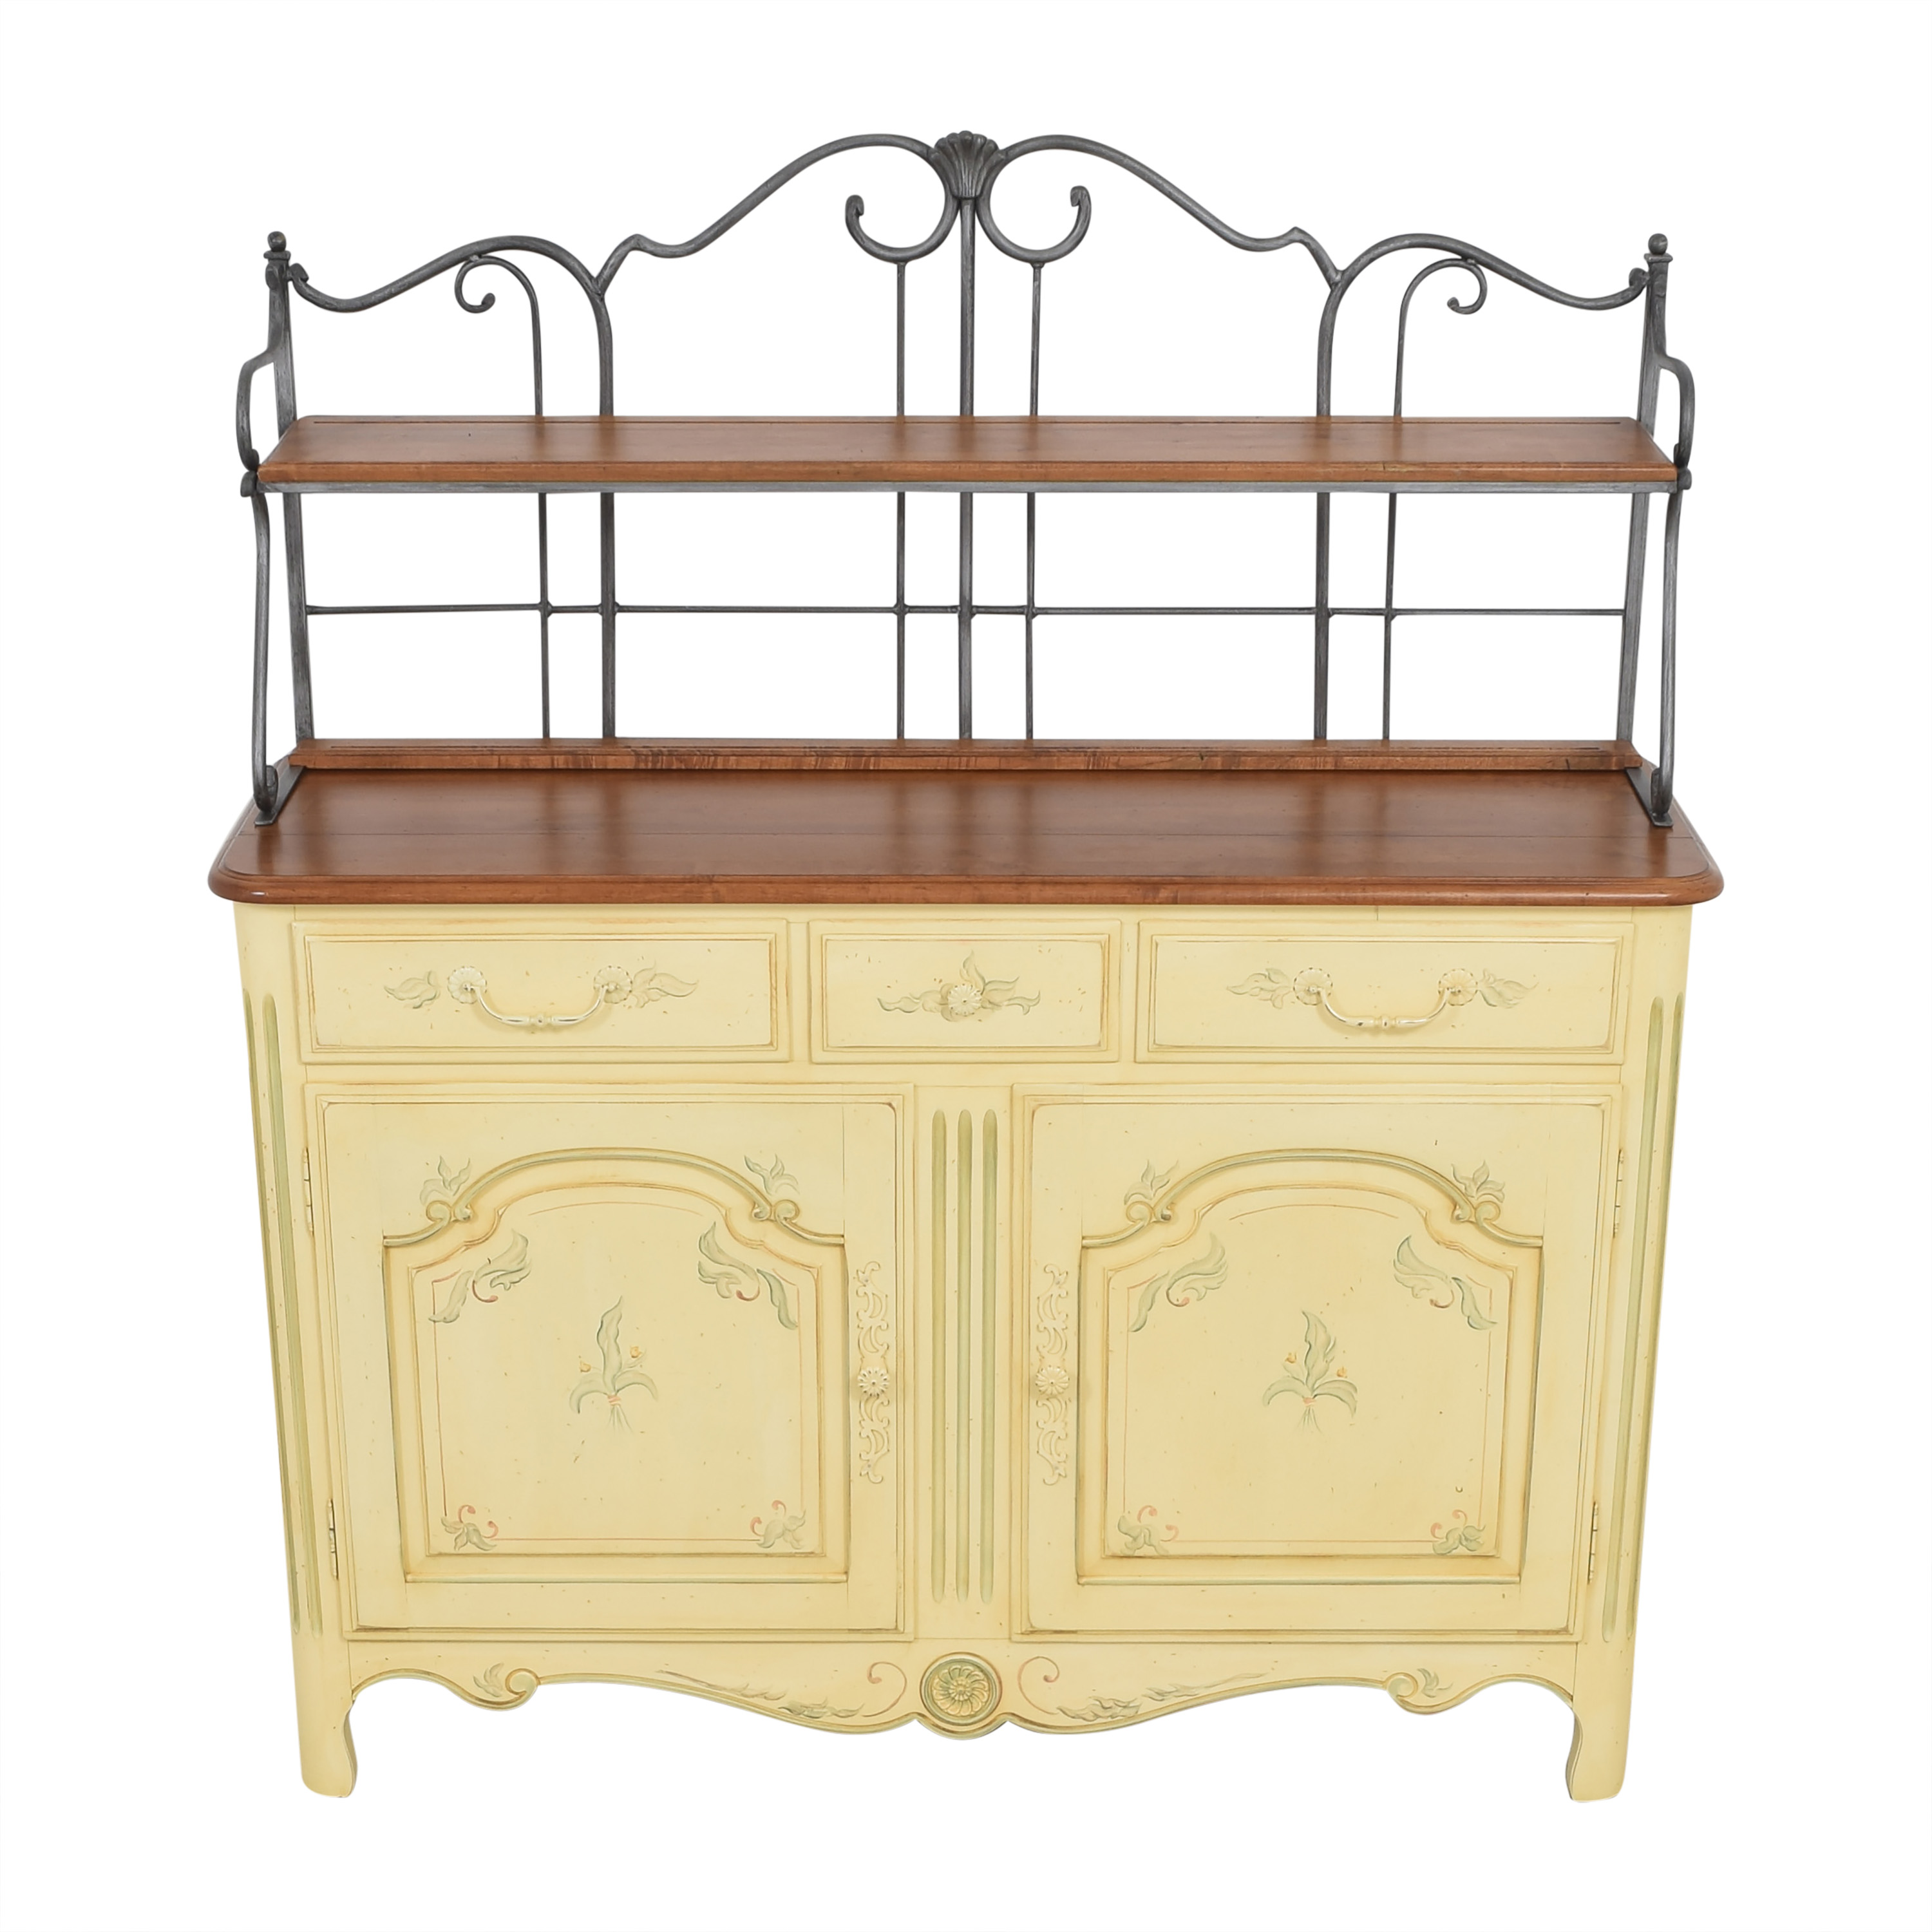 Ethan Allen Ethan Allen Legacy Country French Server Buffet on sale